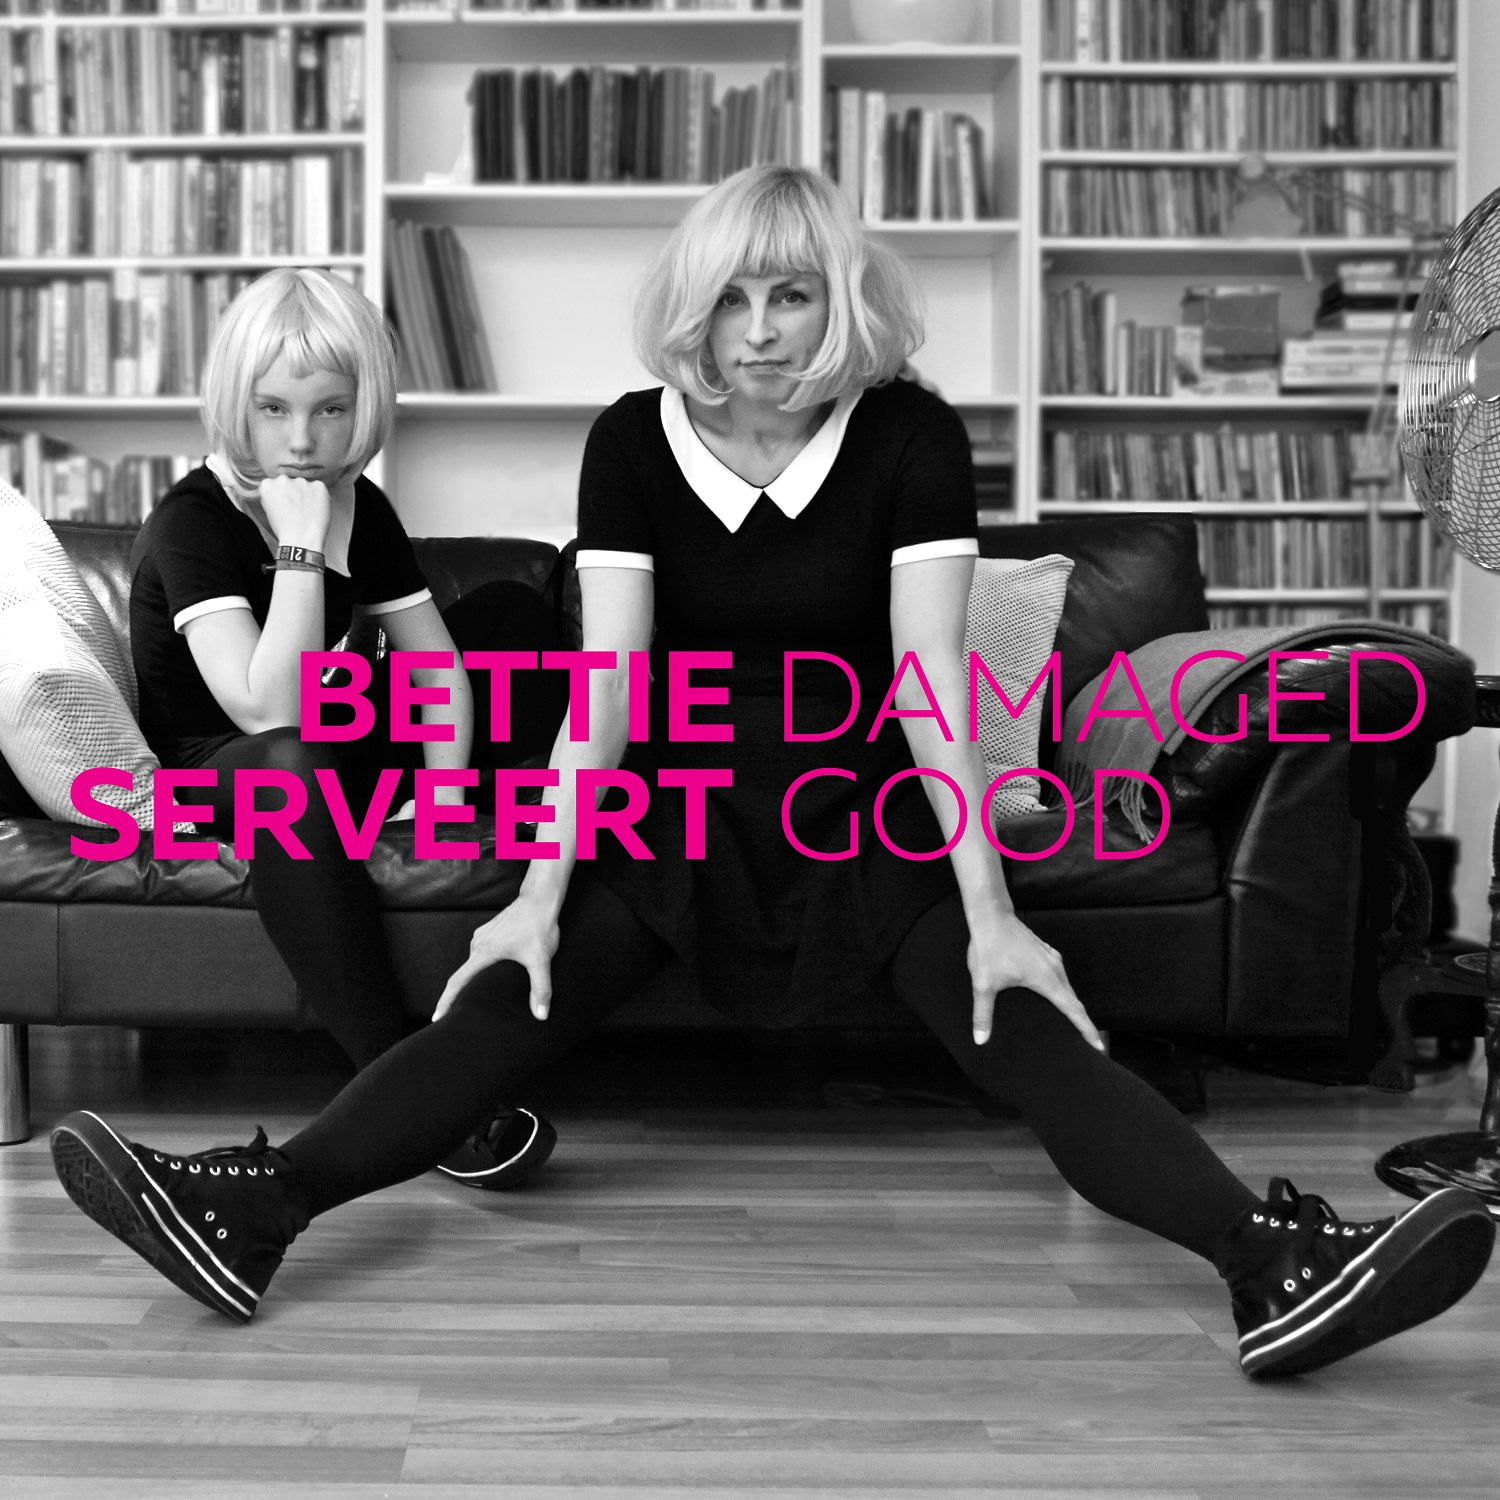 Bettie Serveert - Damaged Good